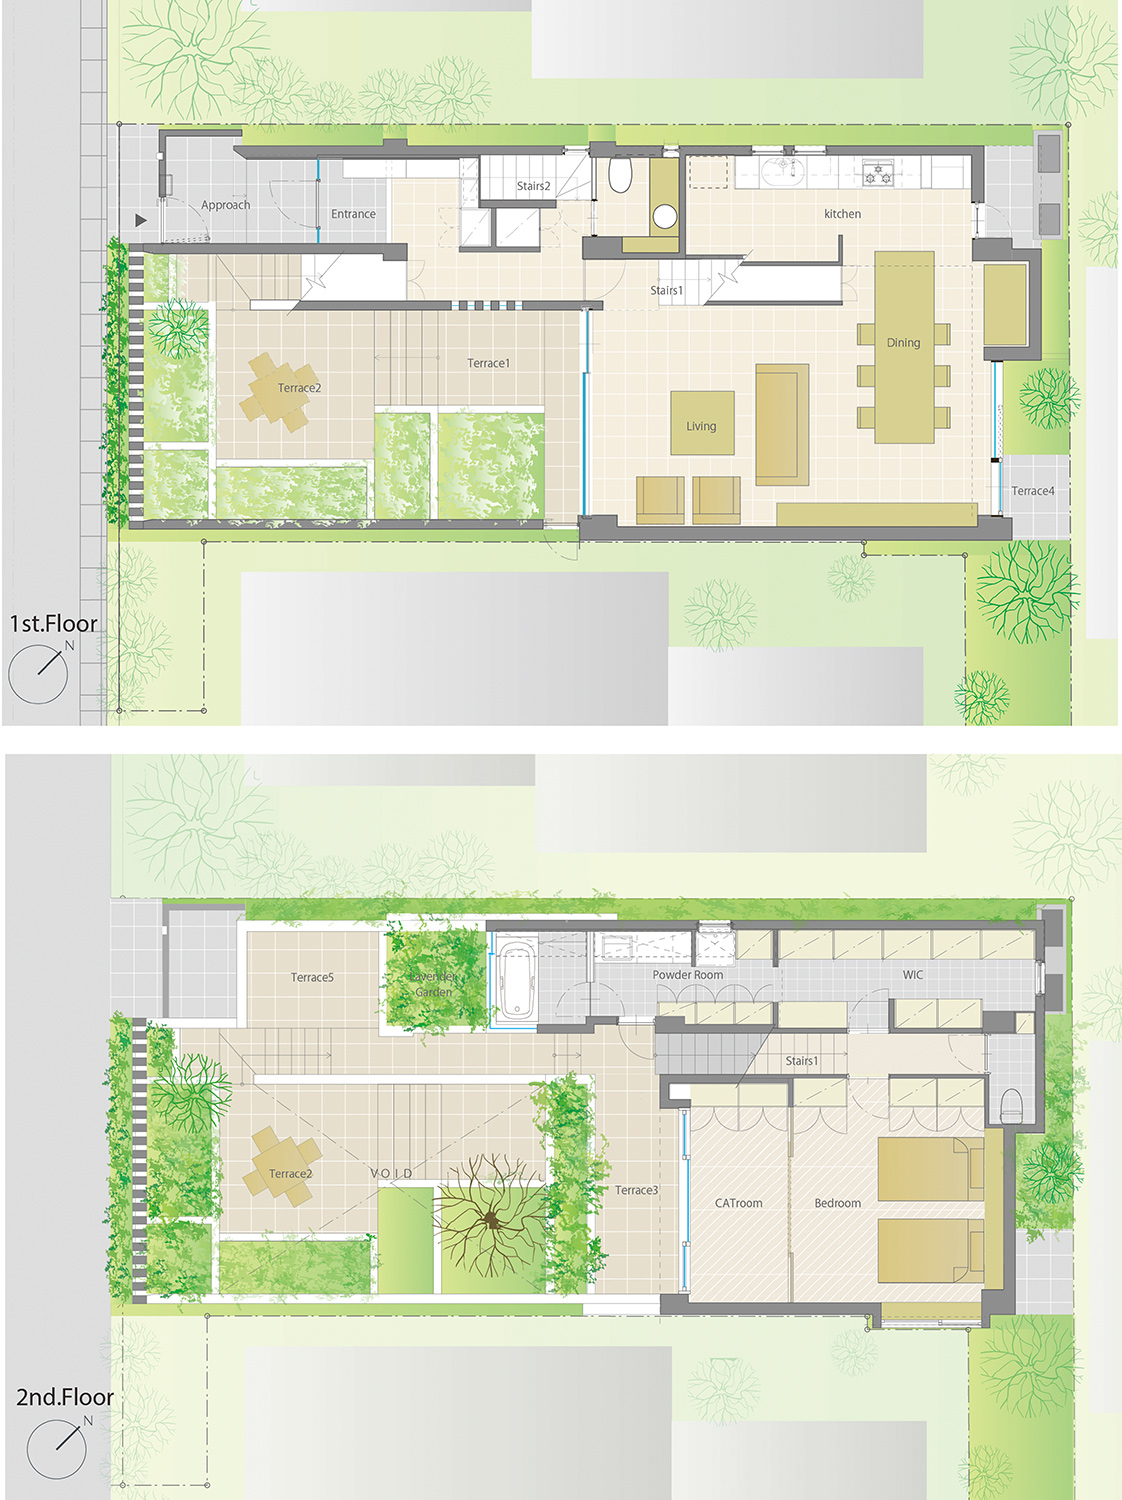 Plan.The interior and the external space are complicatedly intertwined. }